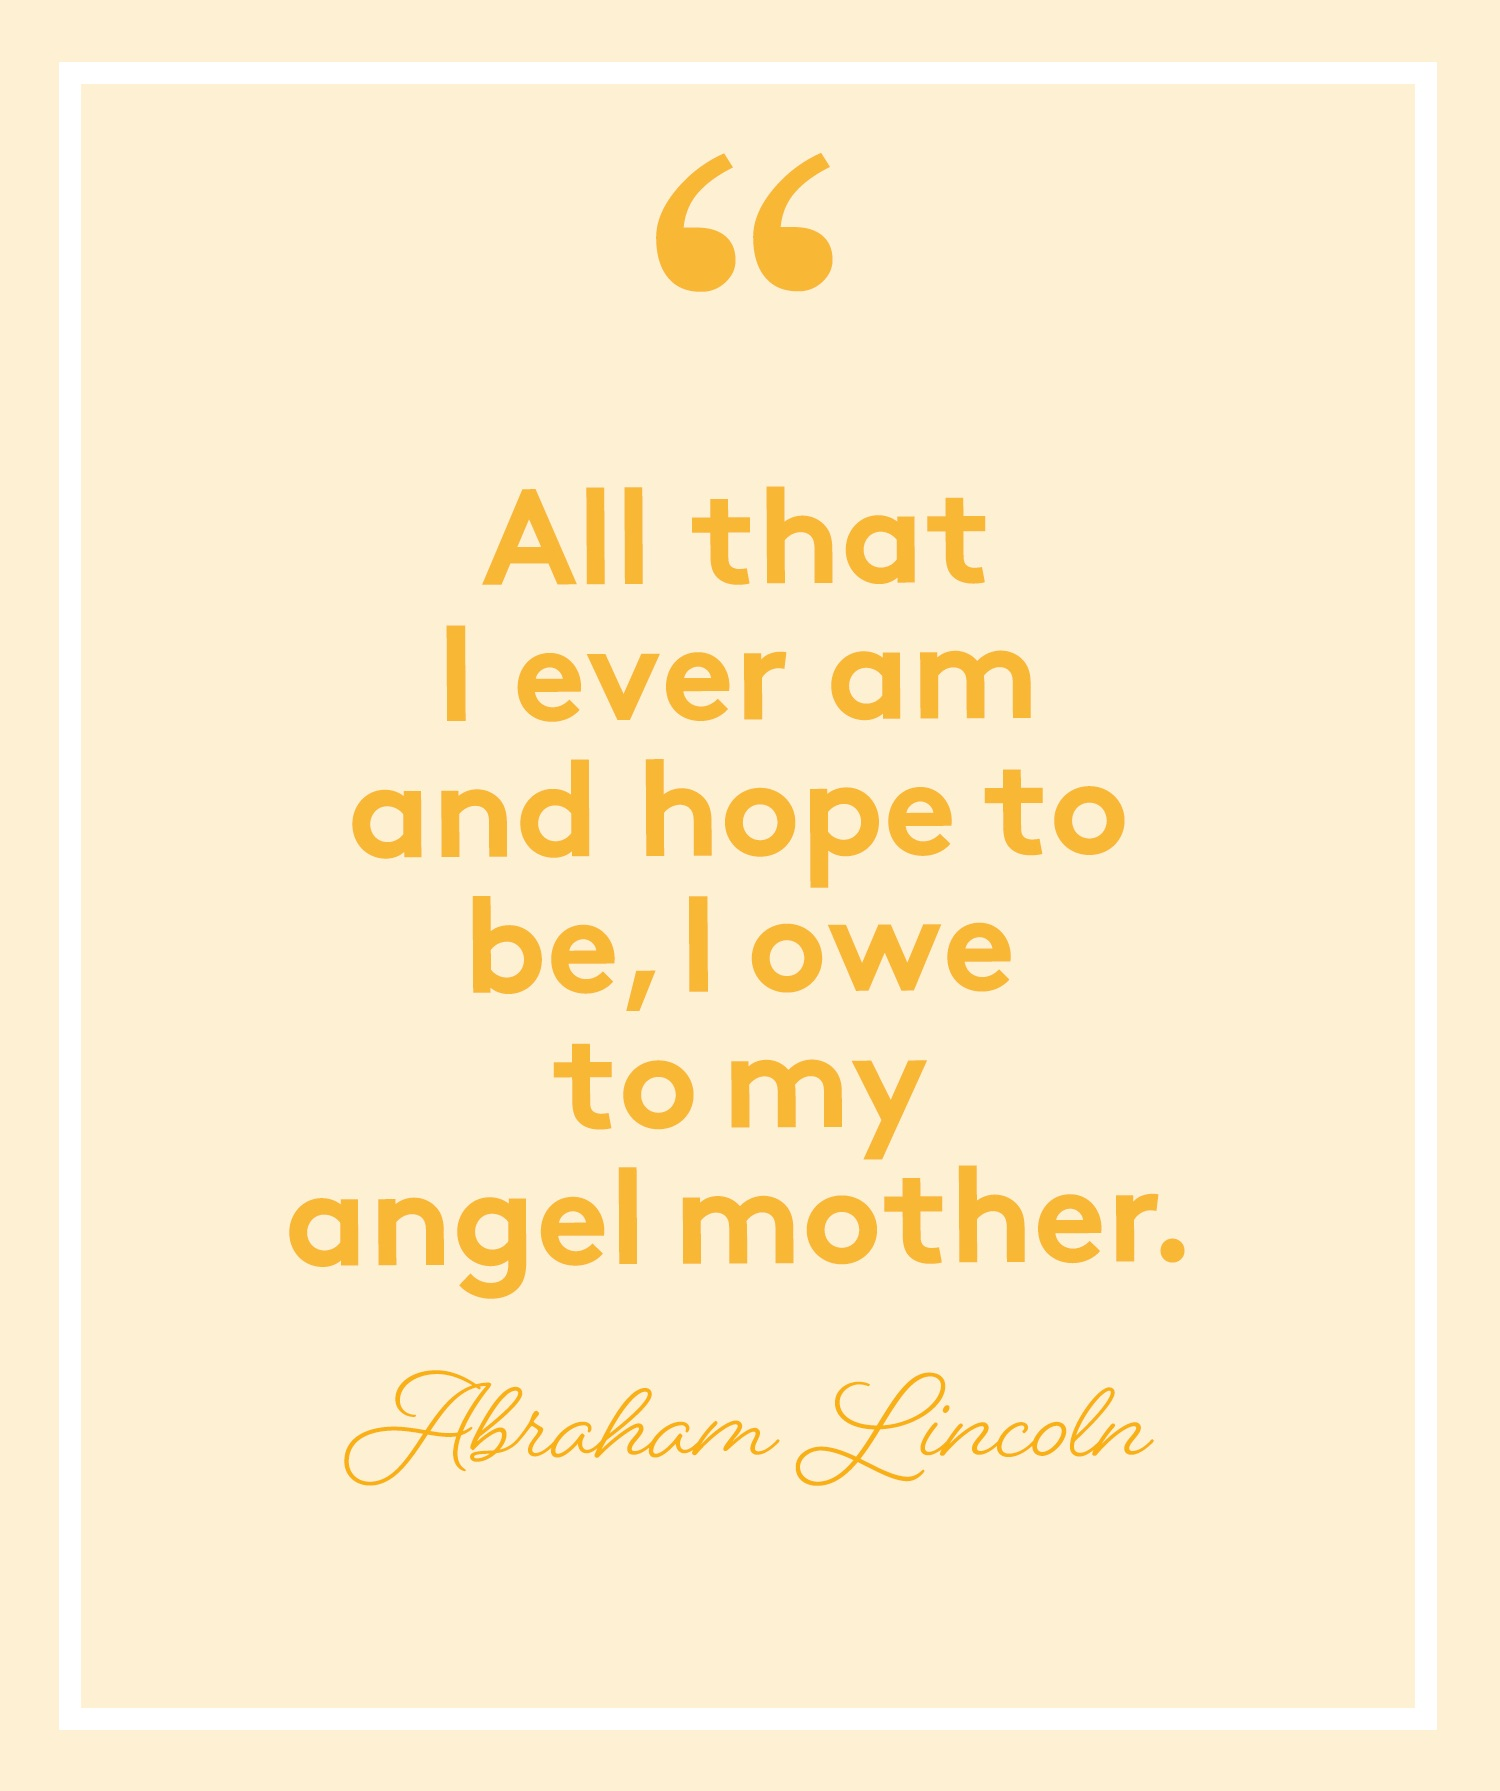 Simple Poems for Mother's Day: Abraham Lincoln Poem